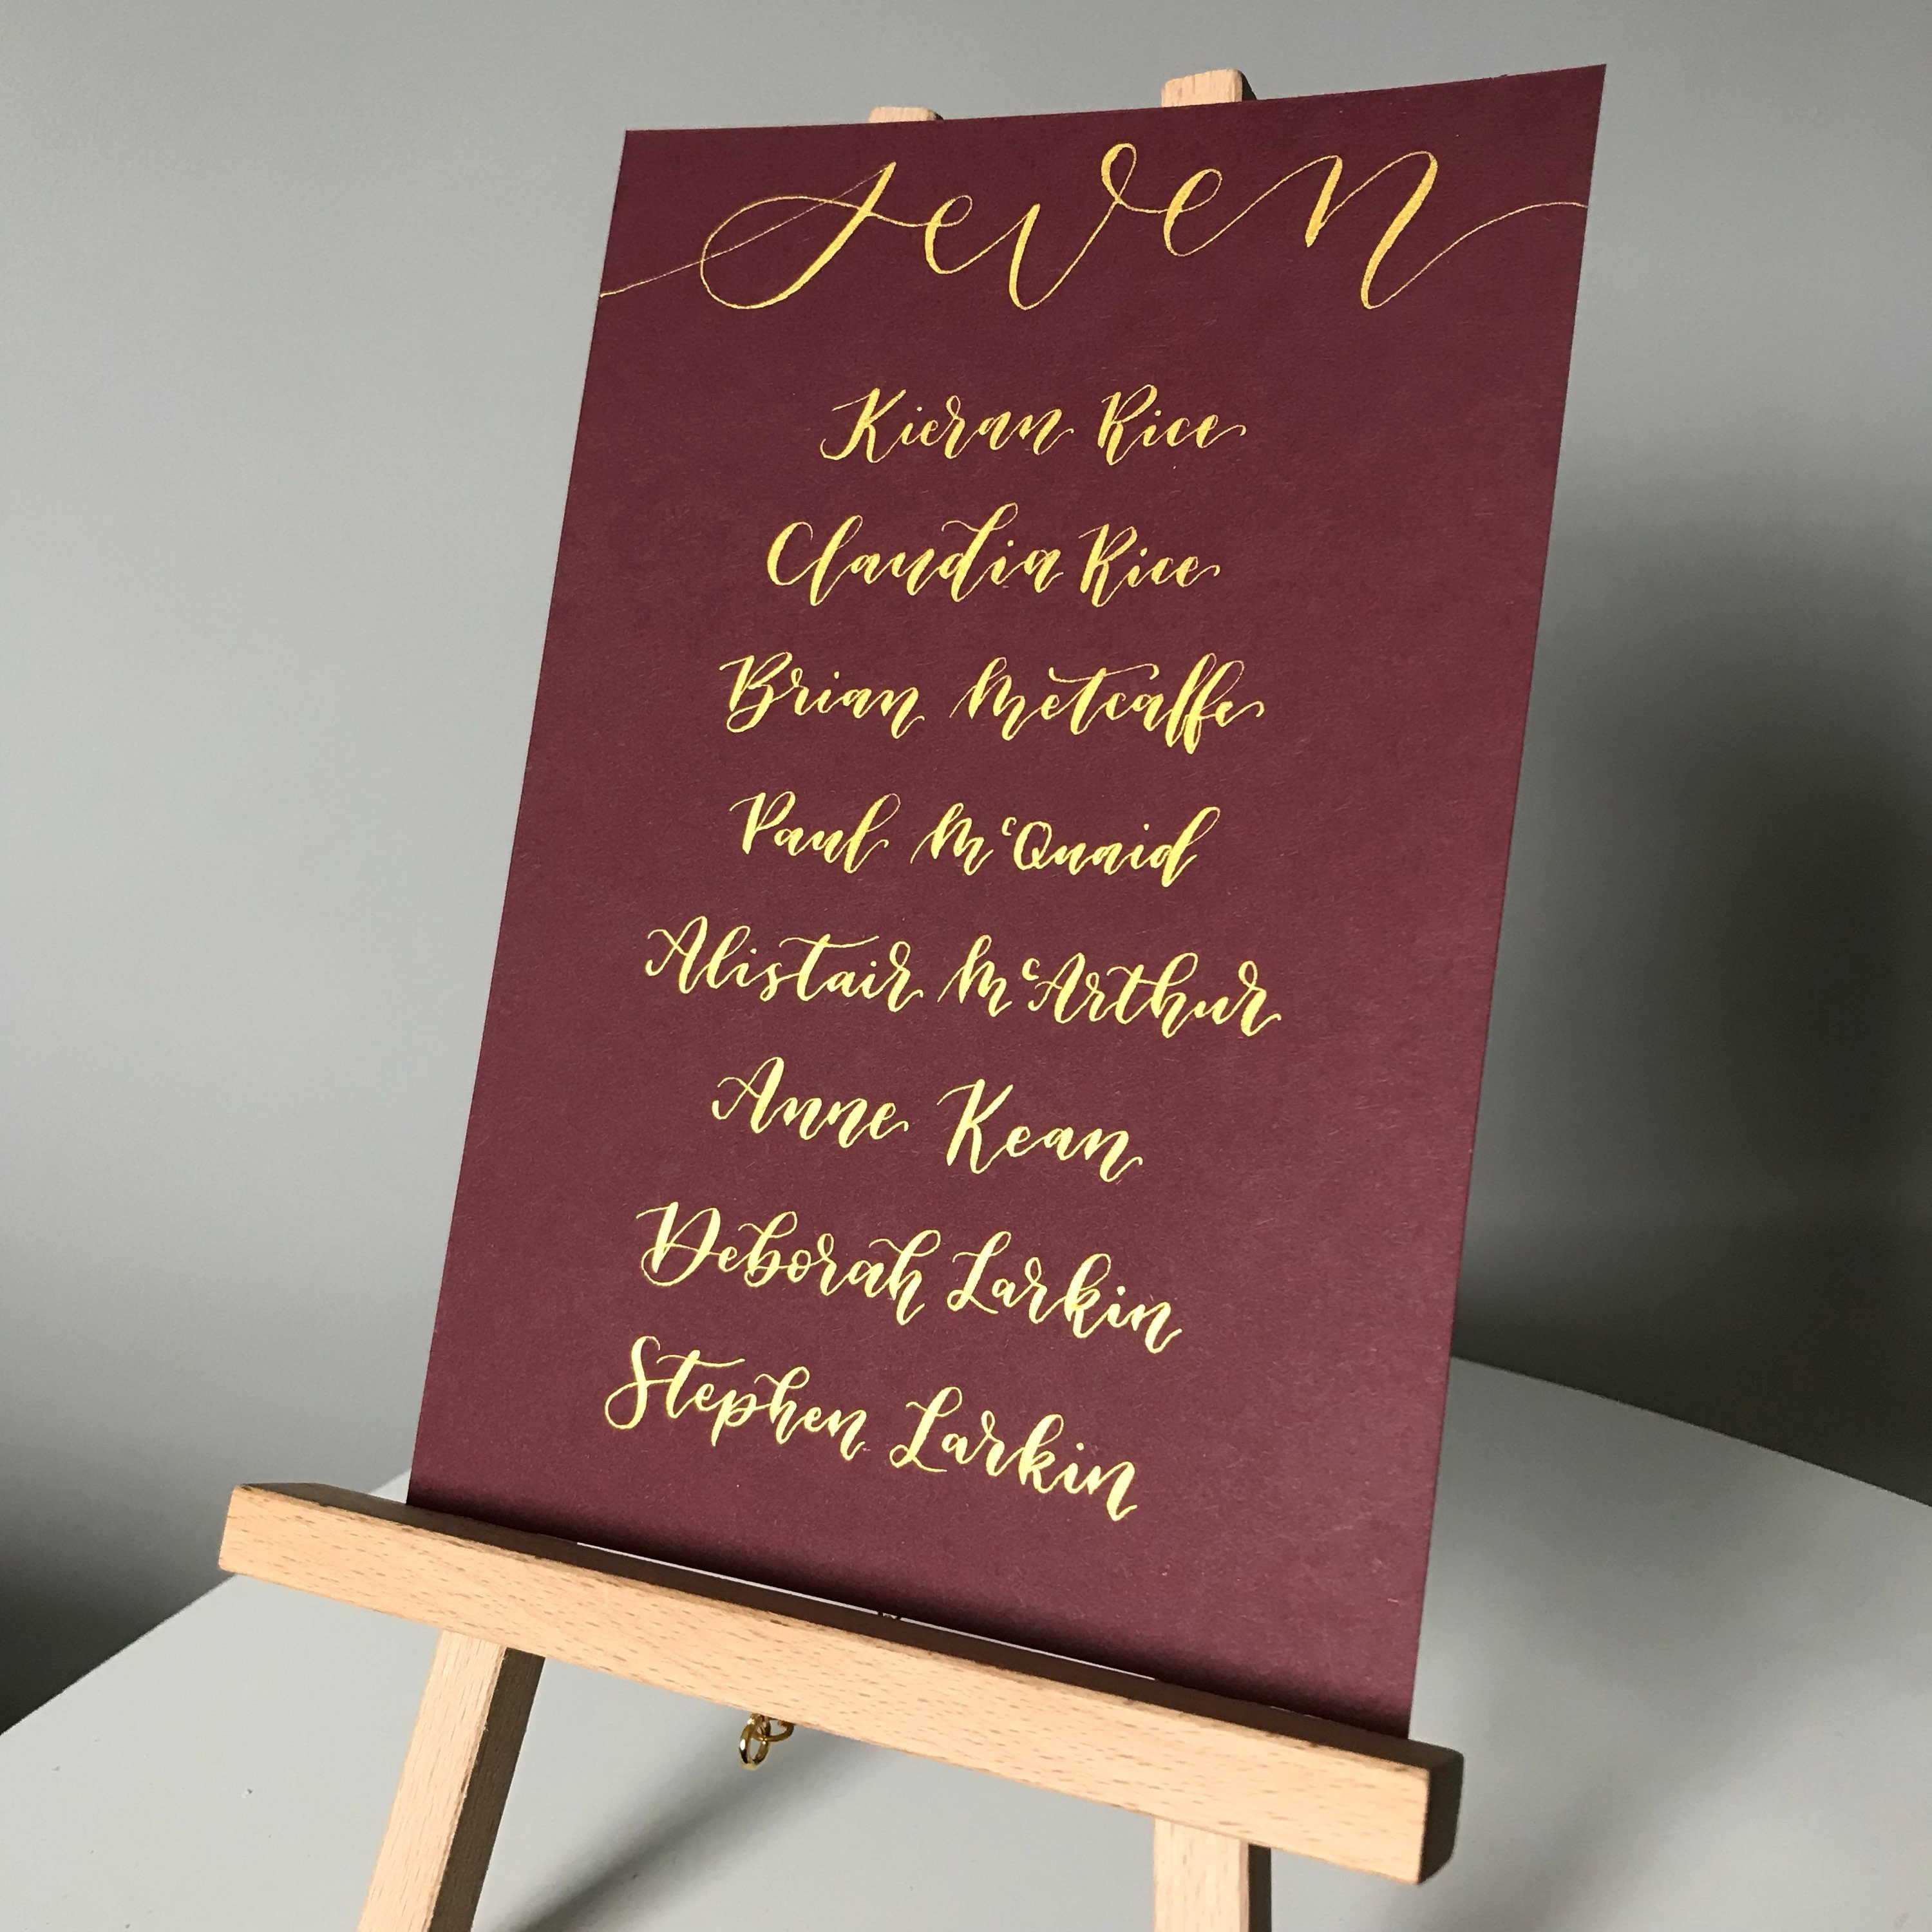 Hand lettered modern calligraphy style wedding table plan